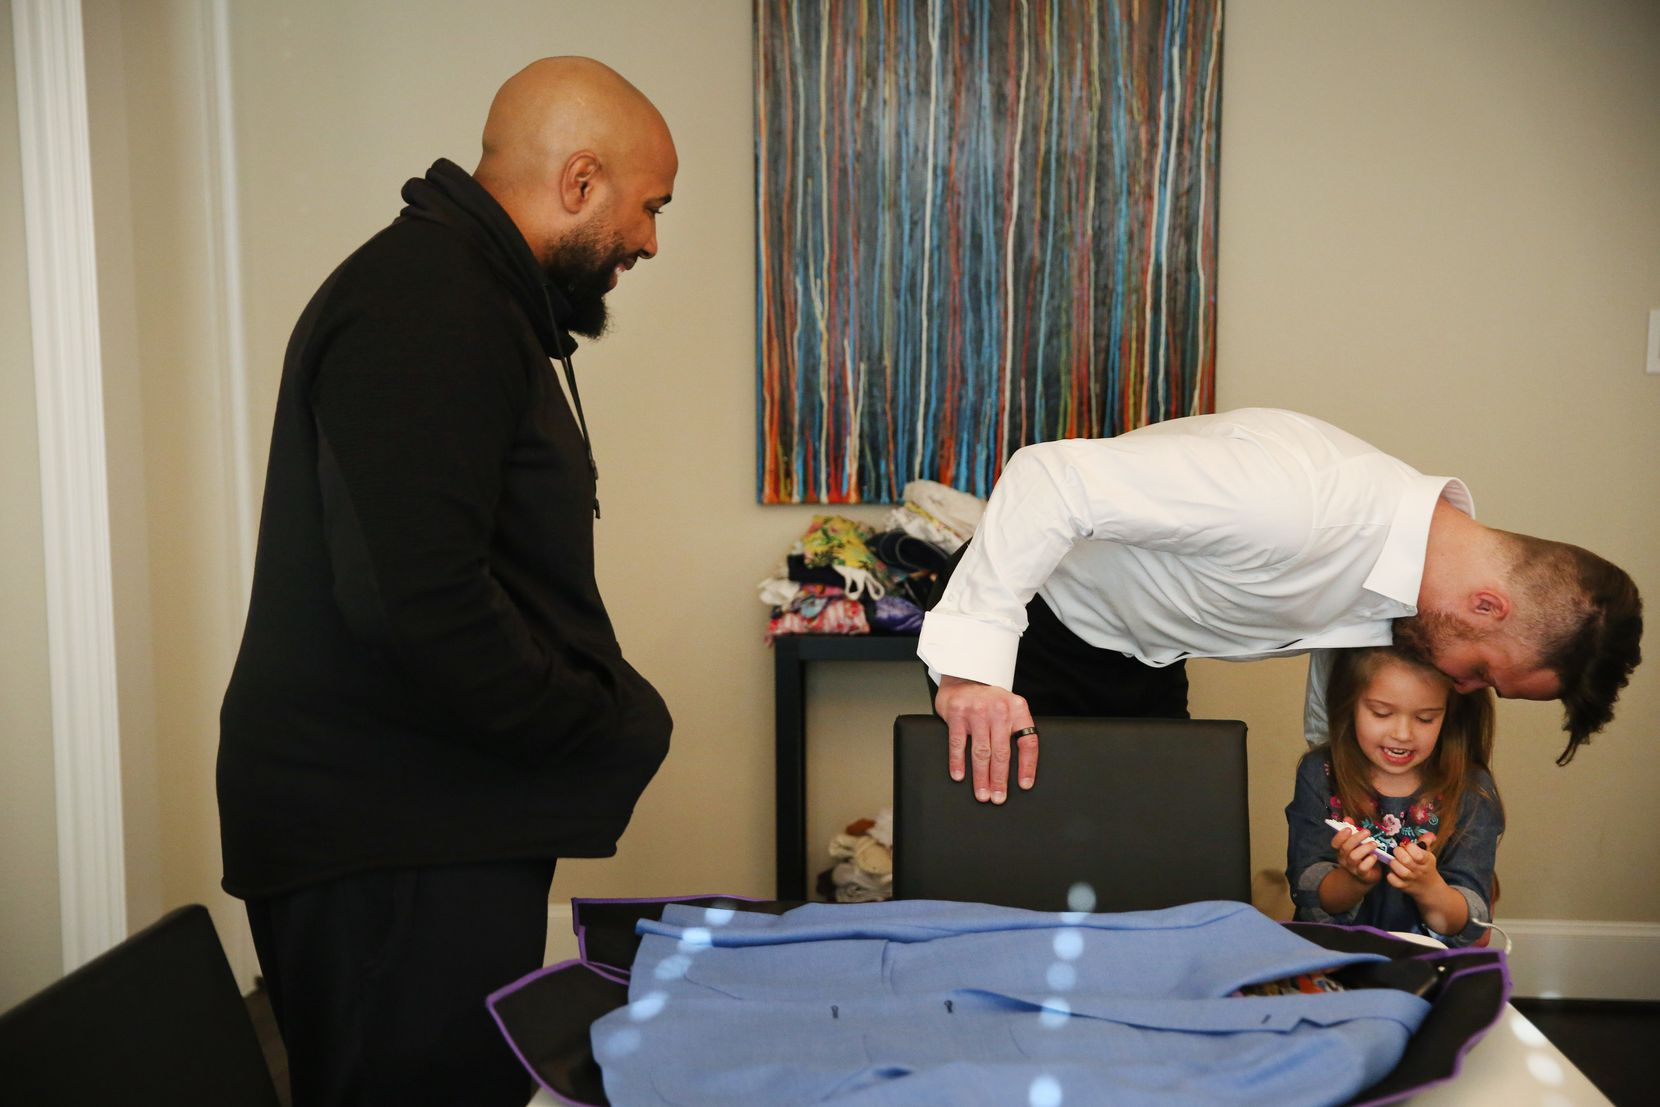 David Vobora kisses his daughter Elealeh as he tries on tuxes at home in The Colony.